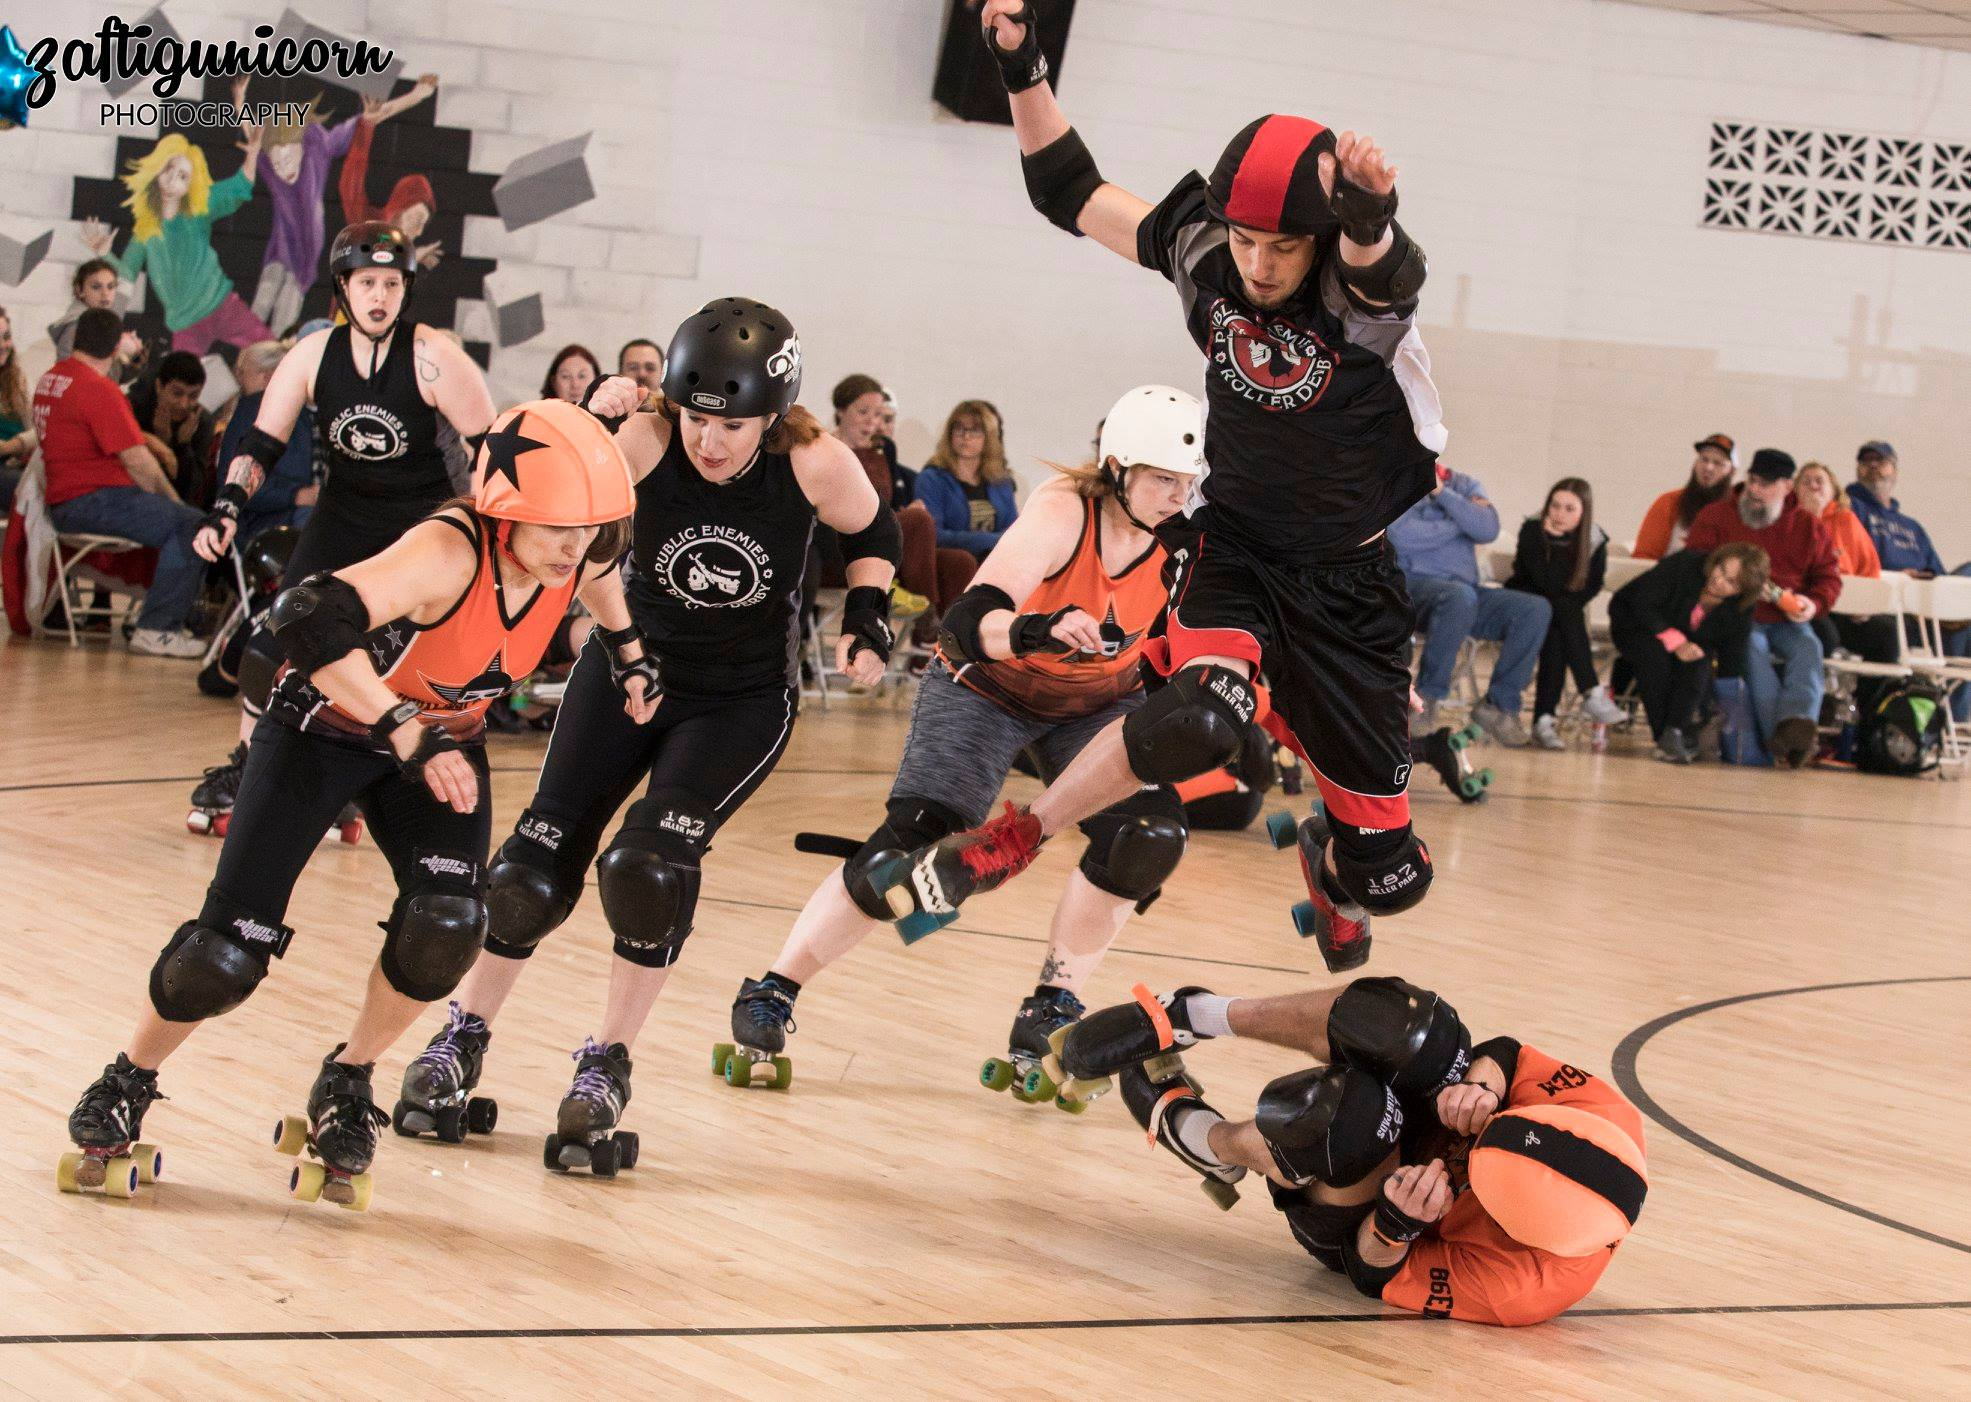 Usual Supsects and Public Enemies of Fountain City Roller Derby